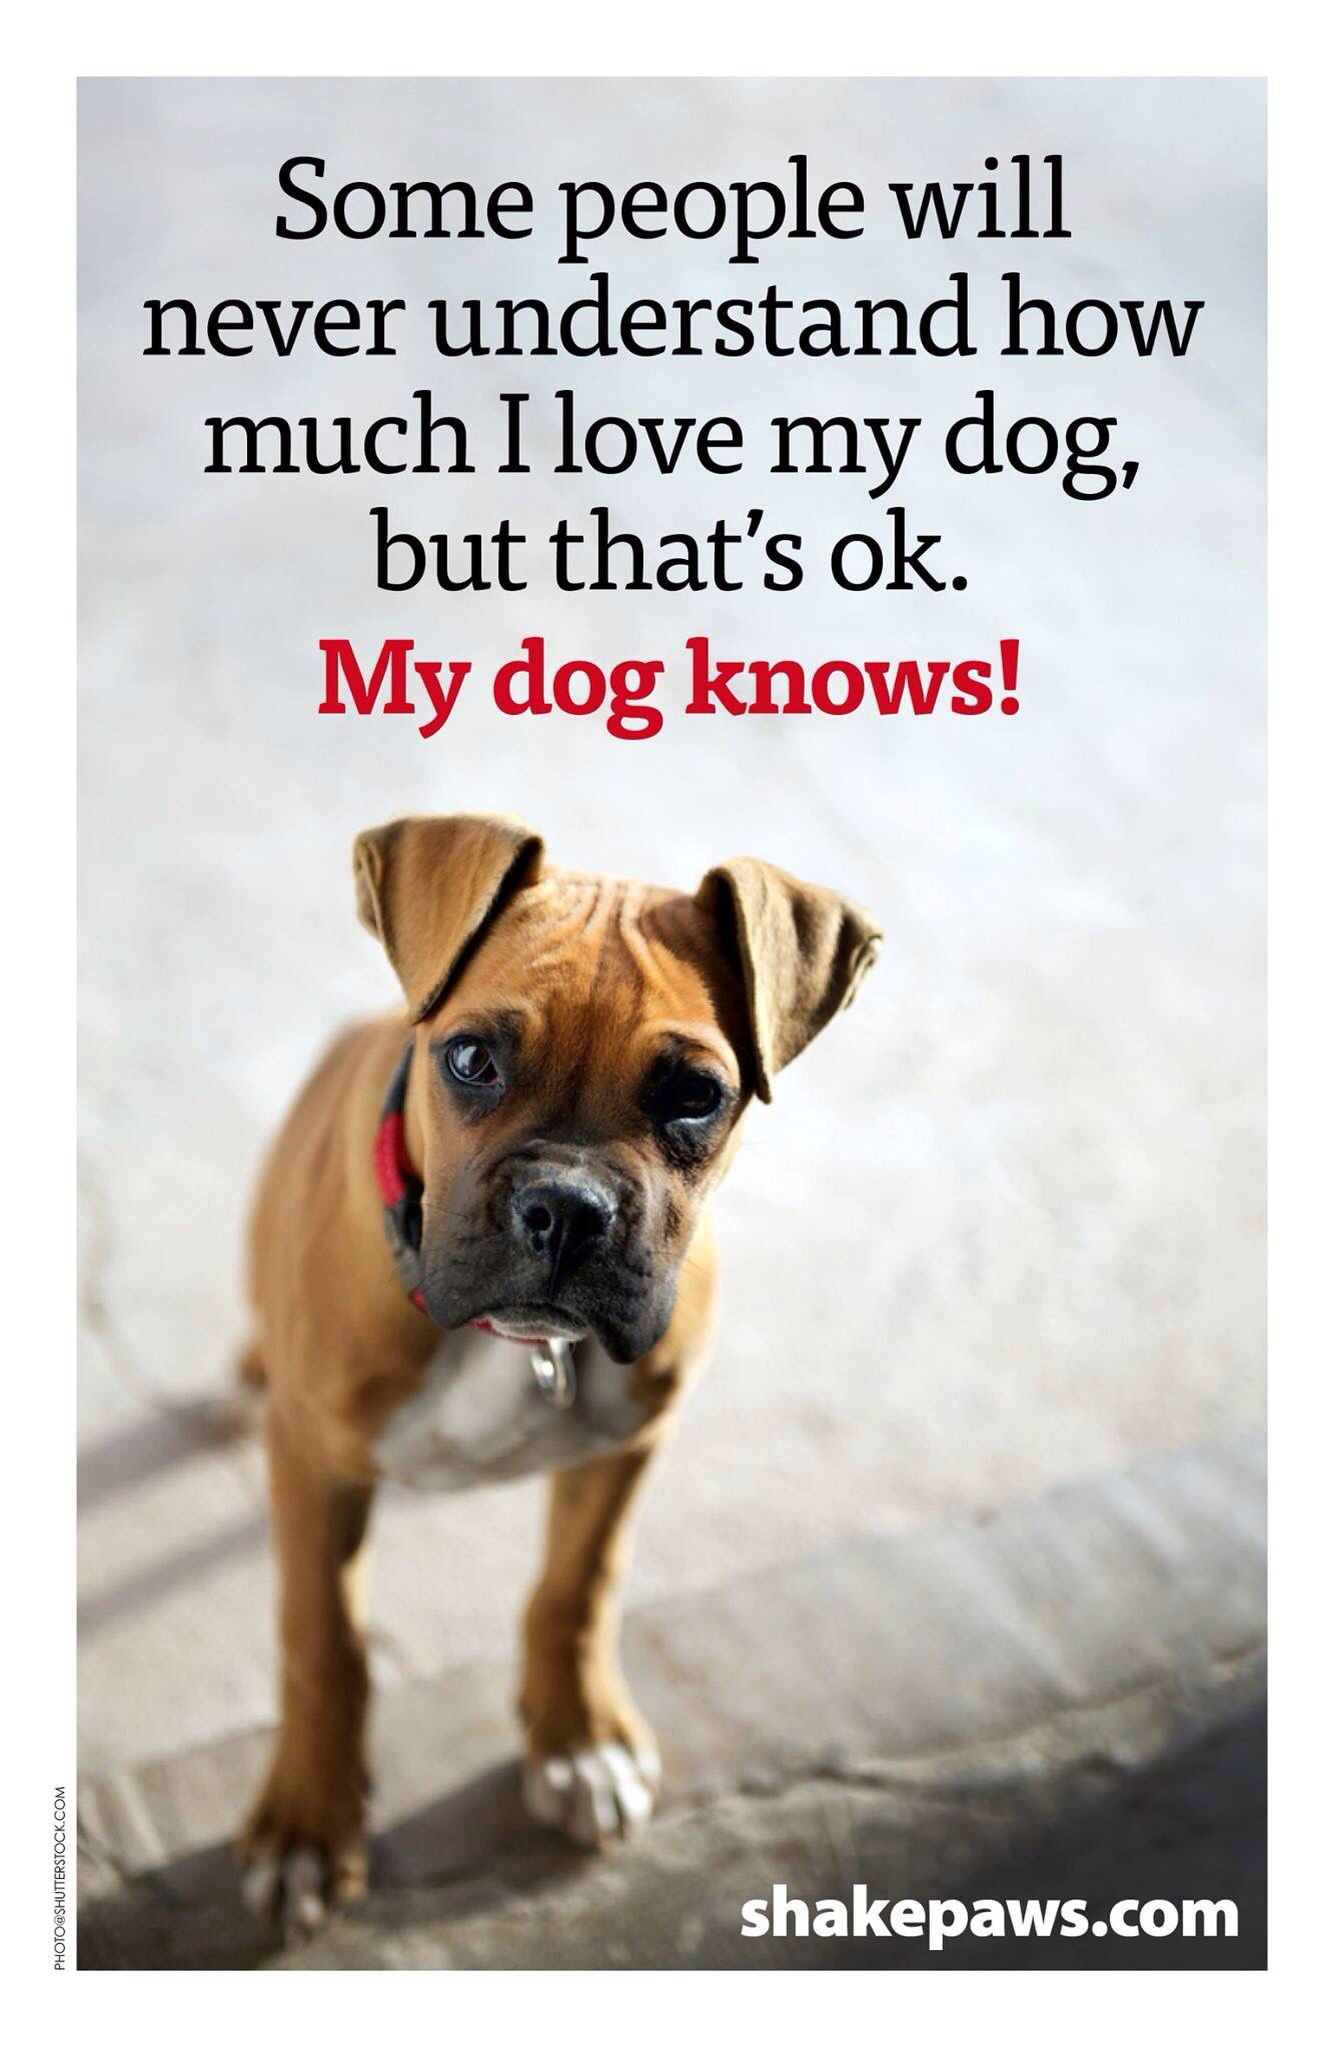 I Love My Dog Quotes Unconditionally  Sweet Fur Babies  Pinterest  Dog Animal And